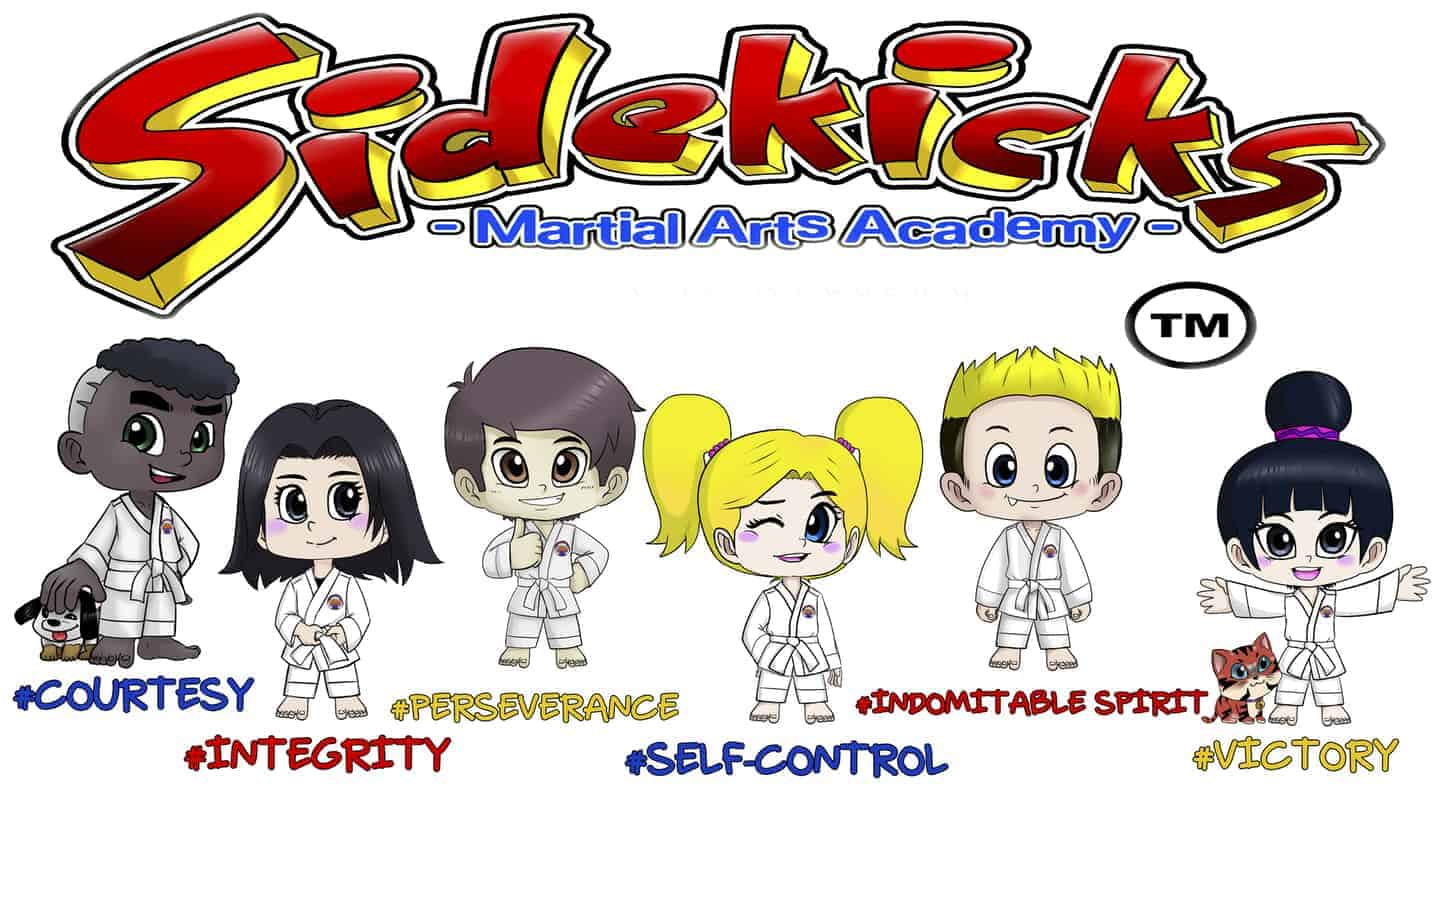 Contact Sidekicks Martial Arts Academy